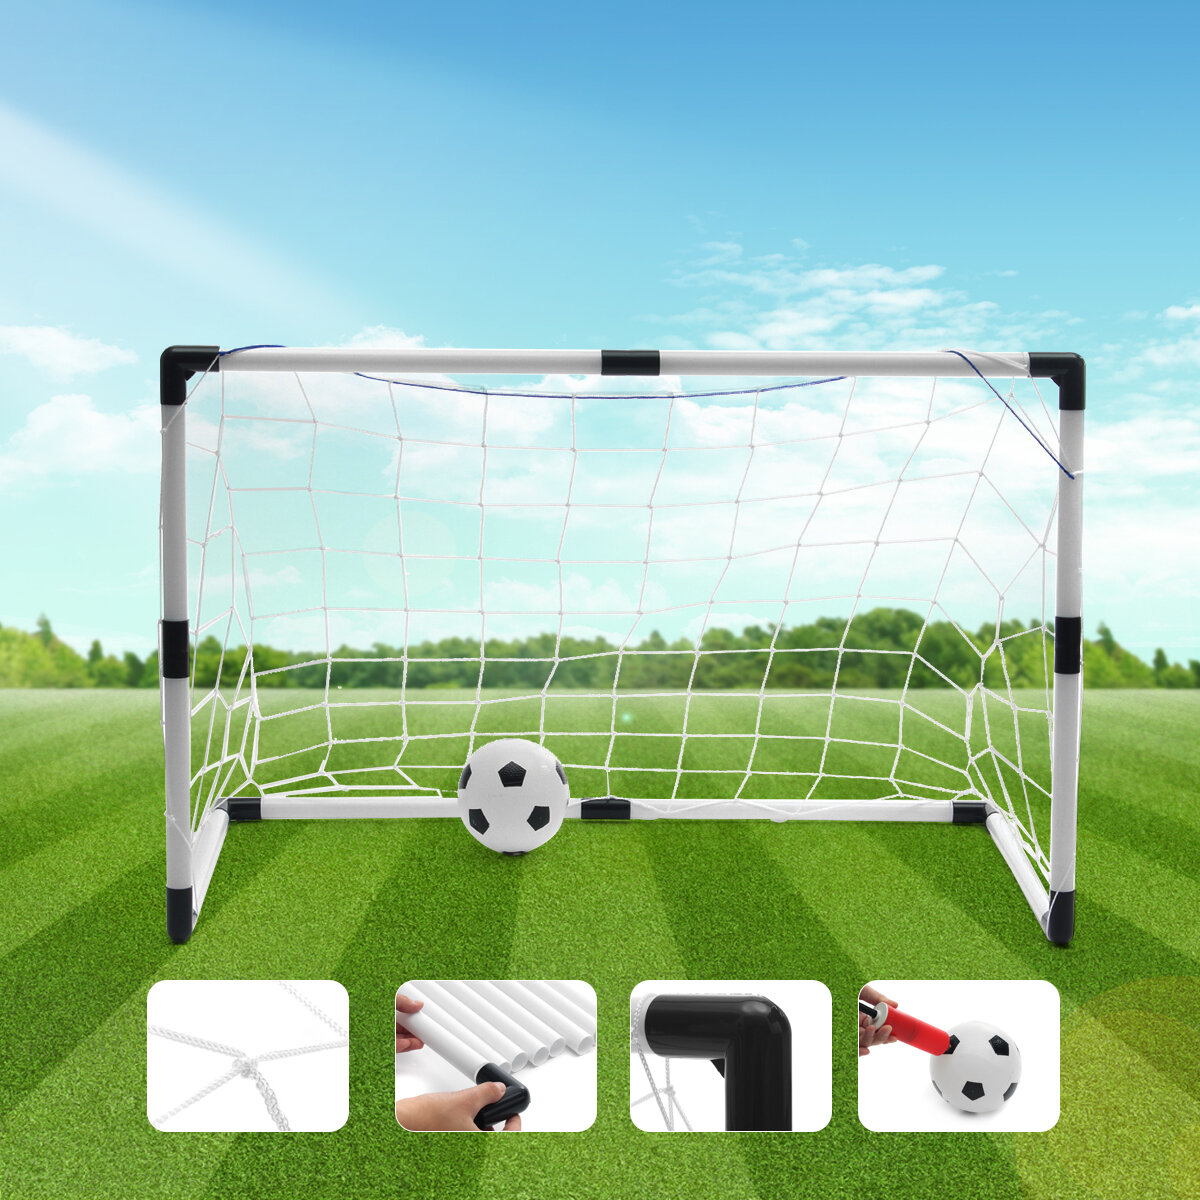 19b0be237091b7 2 mini set football soccer goal post net + ball + pump kids outdoor ...